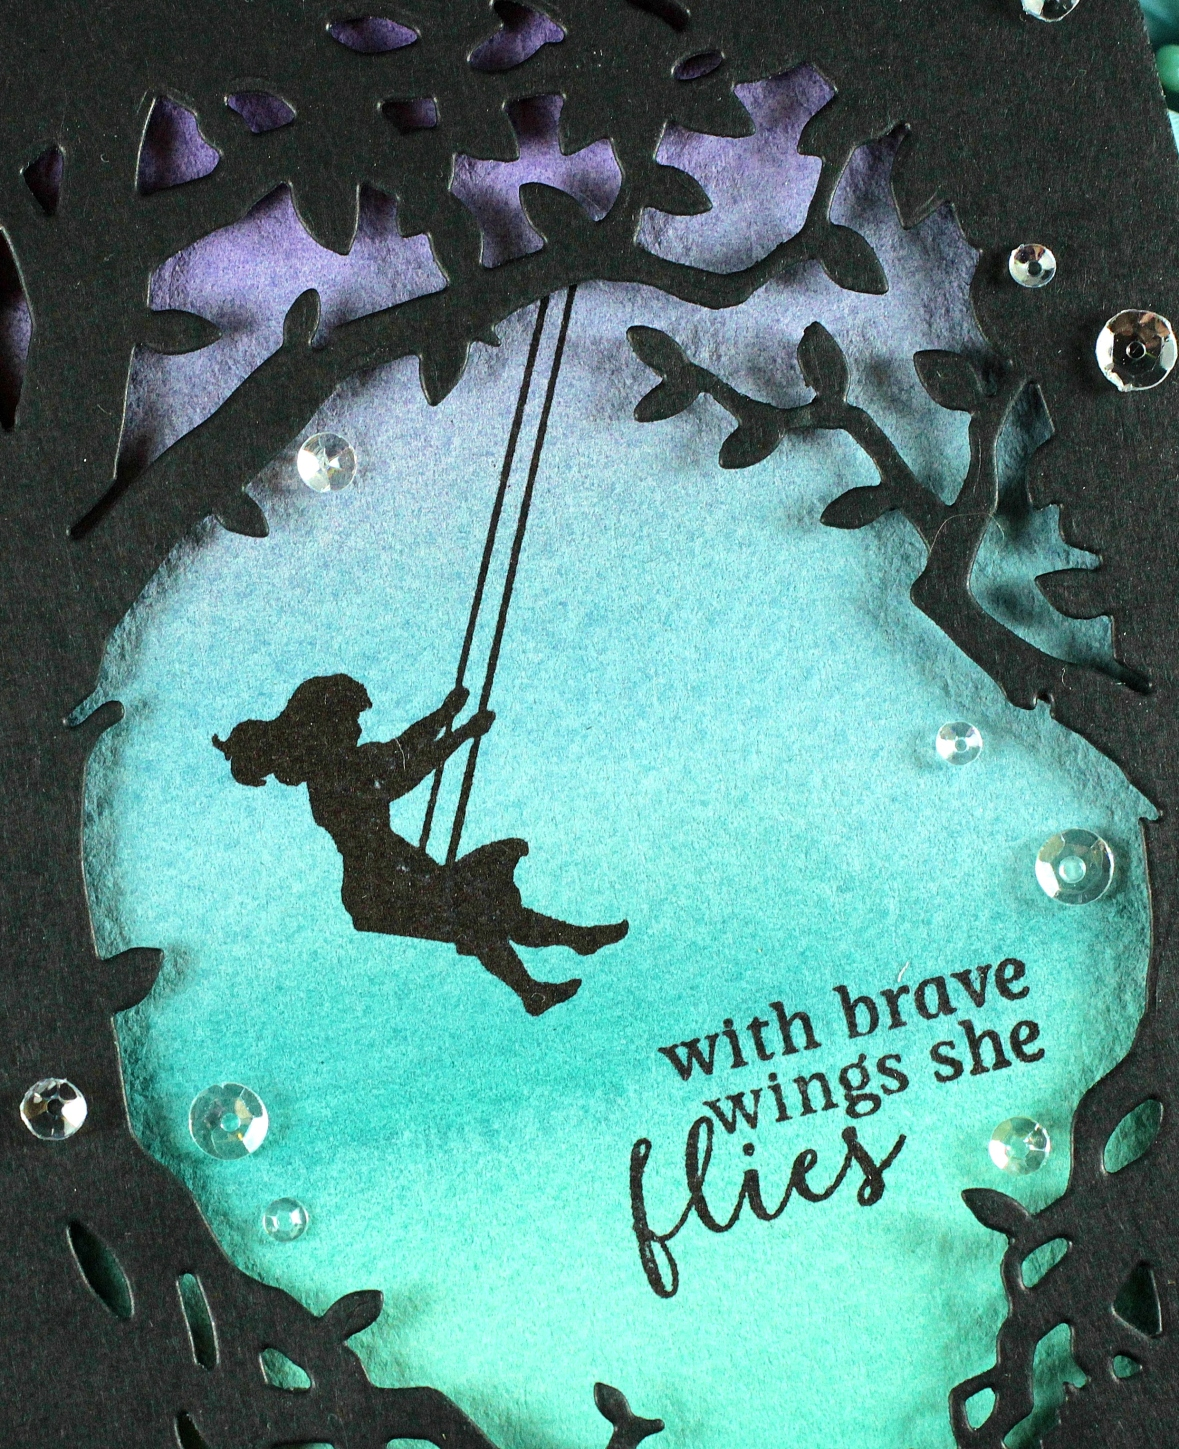 c4c 18 tree girl swing2.jpg